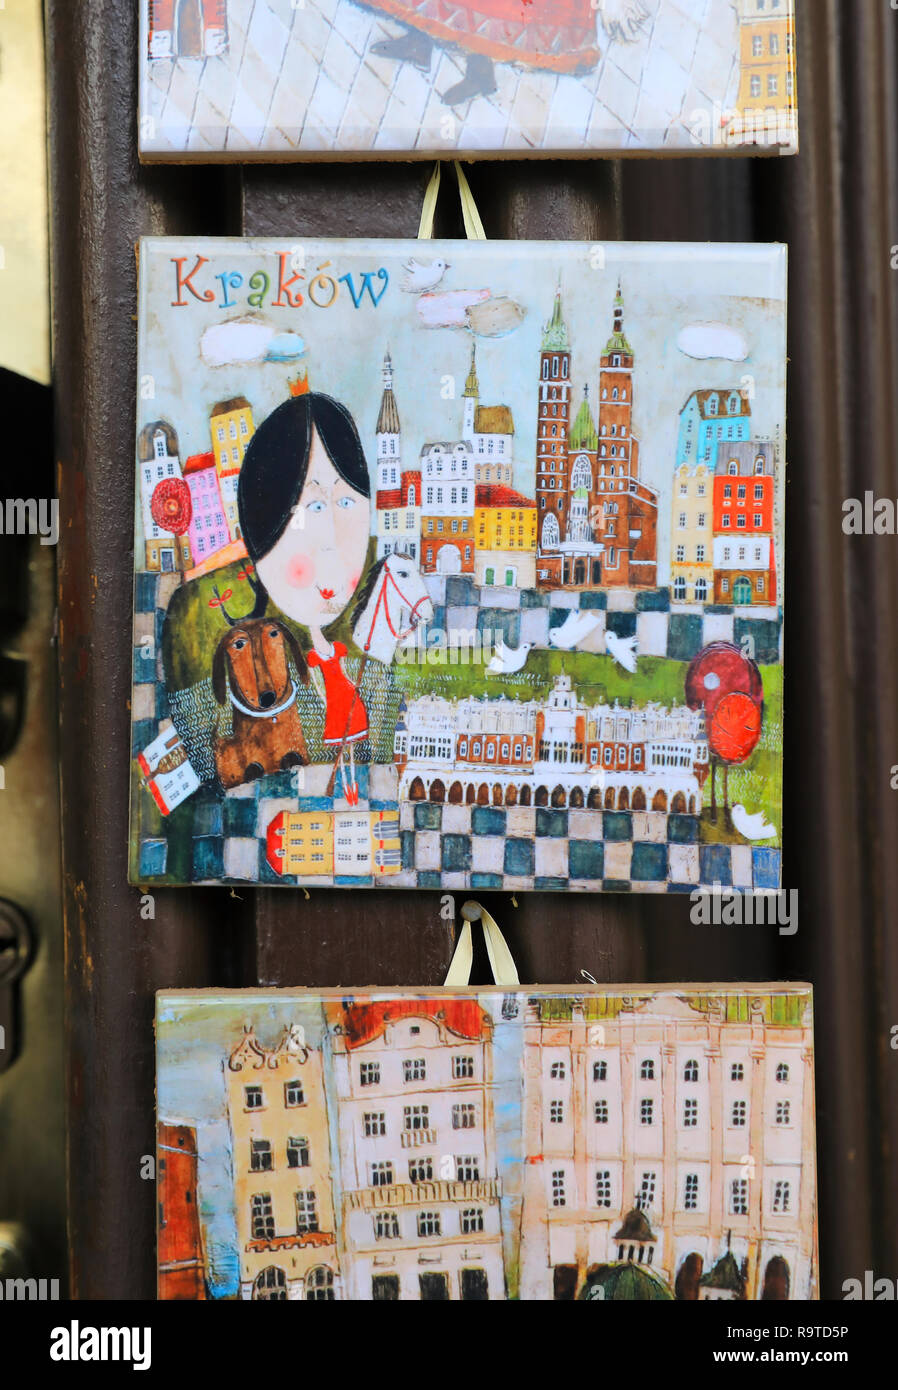 Pretty, local ceramic tiles for sale on stalls on the Christmas market in the Main Market Square, in the Old Town in Krakow, Poland - Stock Image